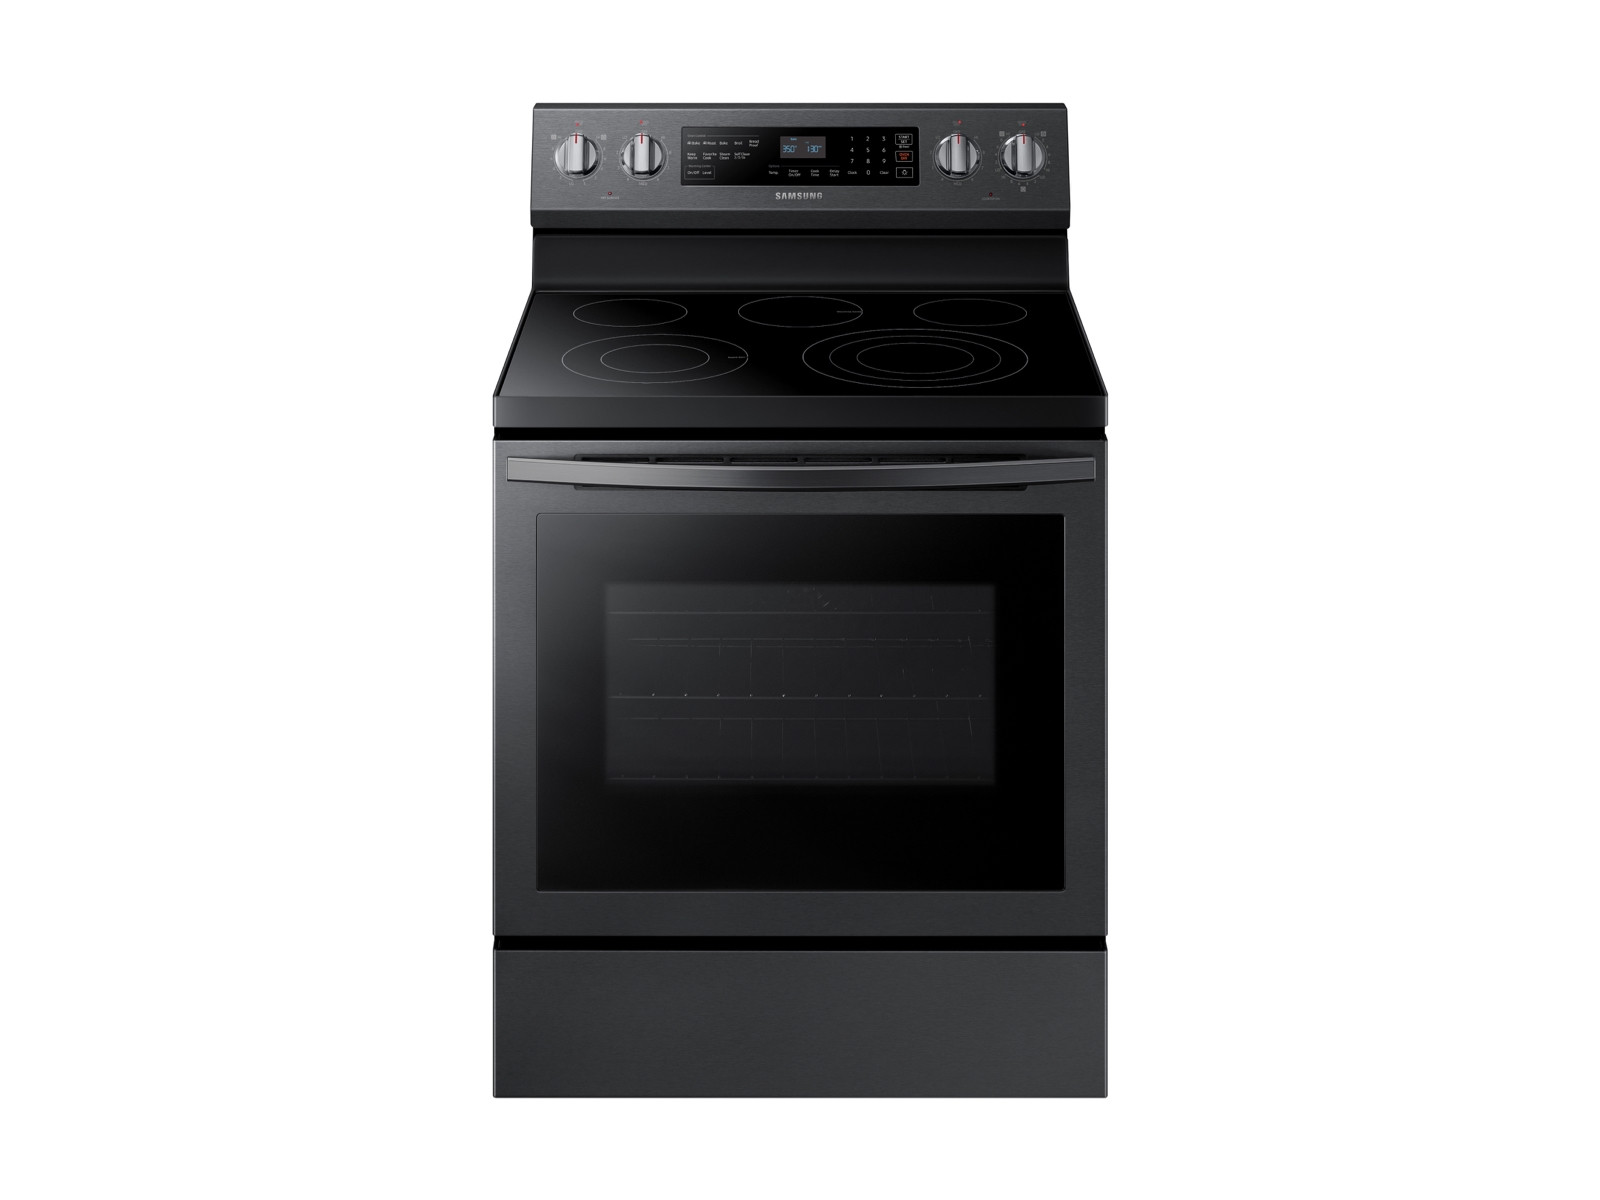 Samsung 5.9 cu. ft. Freestanding Electric Range with True Convection in Black Stainless Steel, Fingerprint Resistant Black Stainless Steel